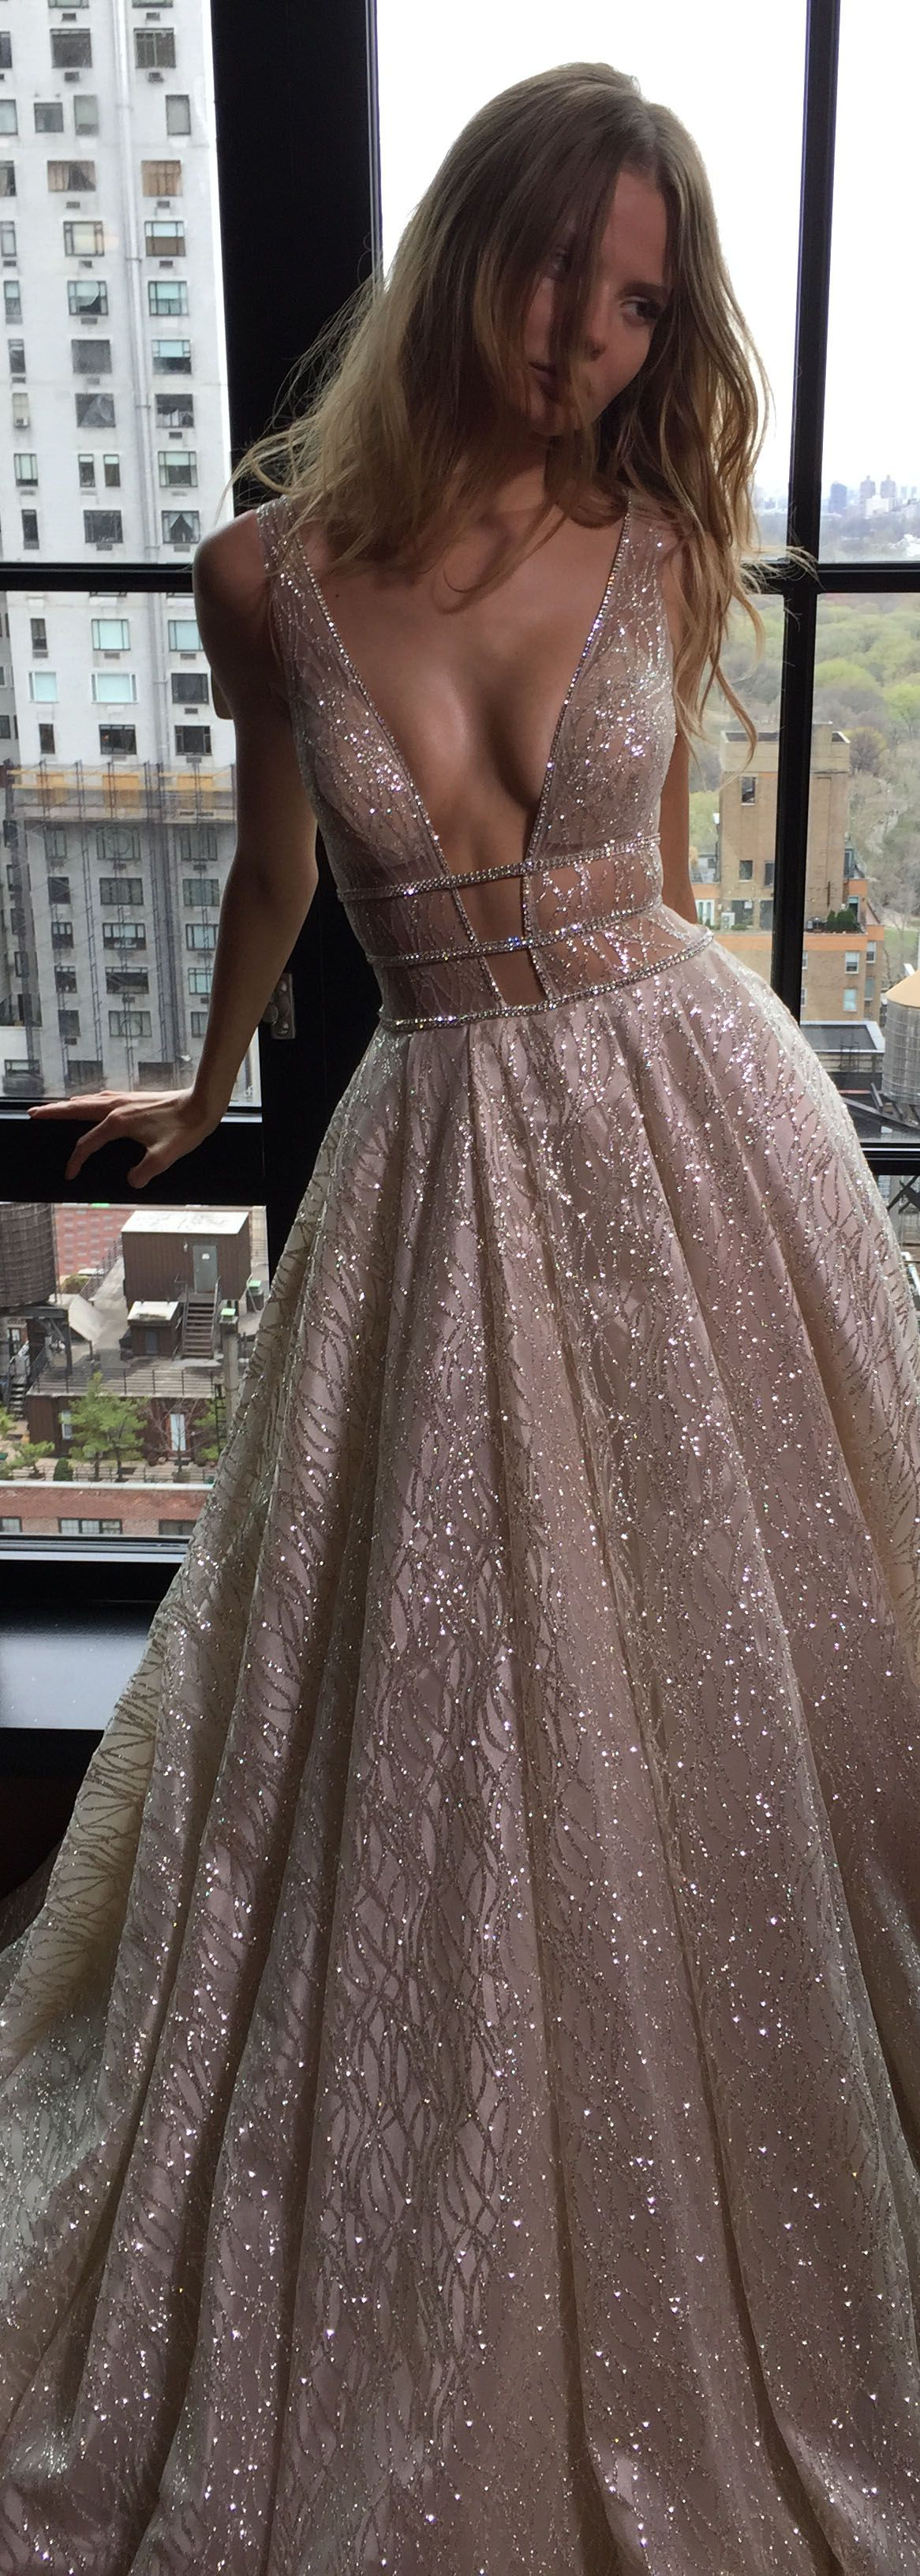 Sparkly ball gown